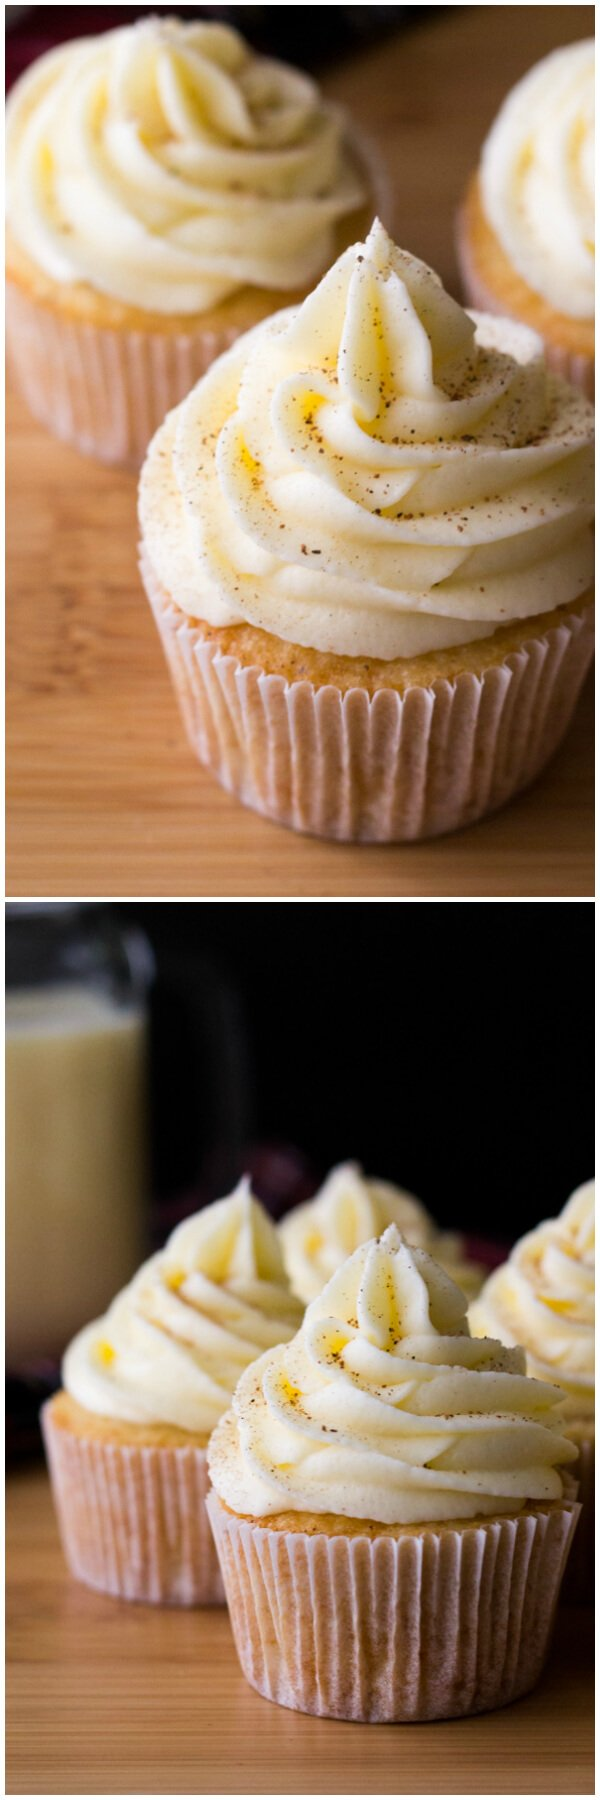 Light & fluffy Eggnog Cupcakes piled high with Eggnog Buttercream. Perfect for a holiday party, or present to yourself! www.justsotasty.com